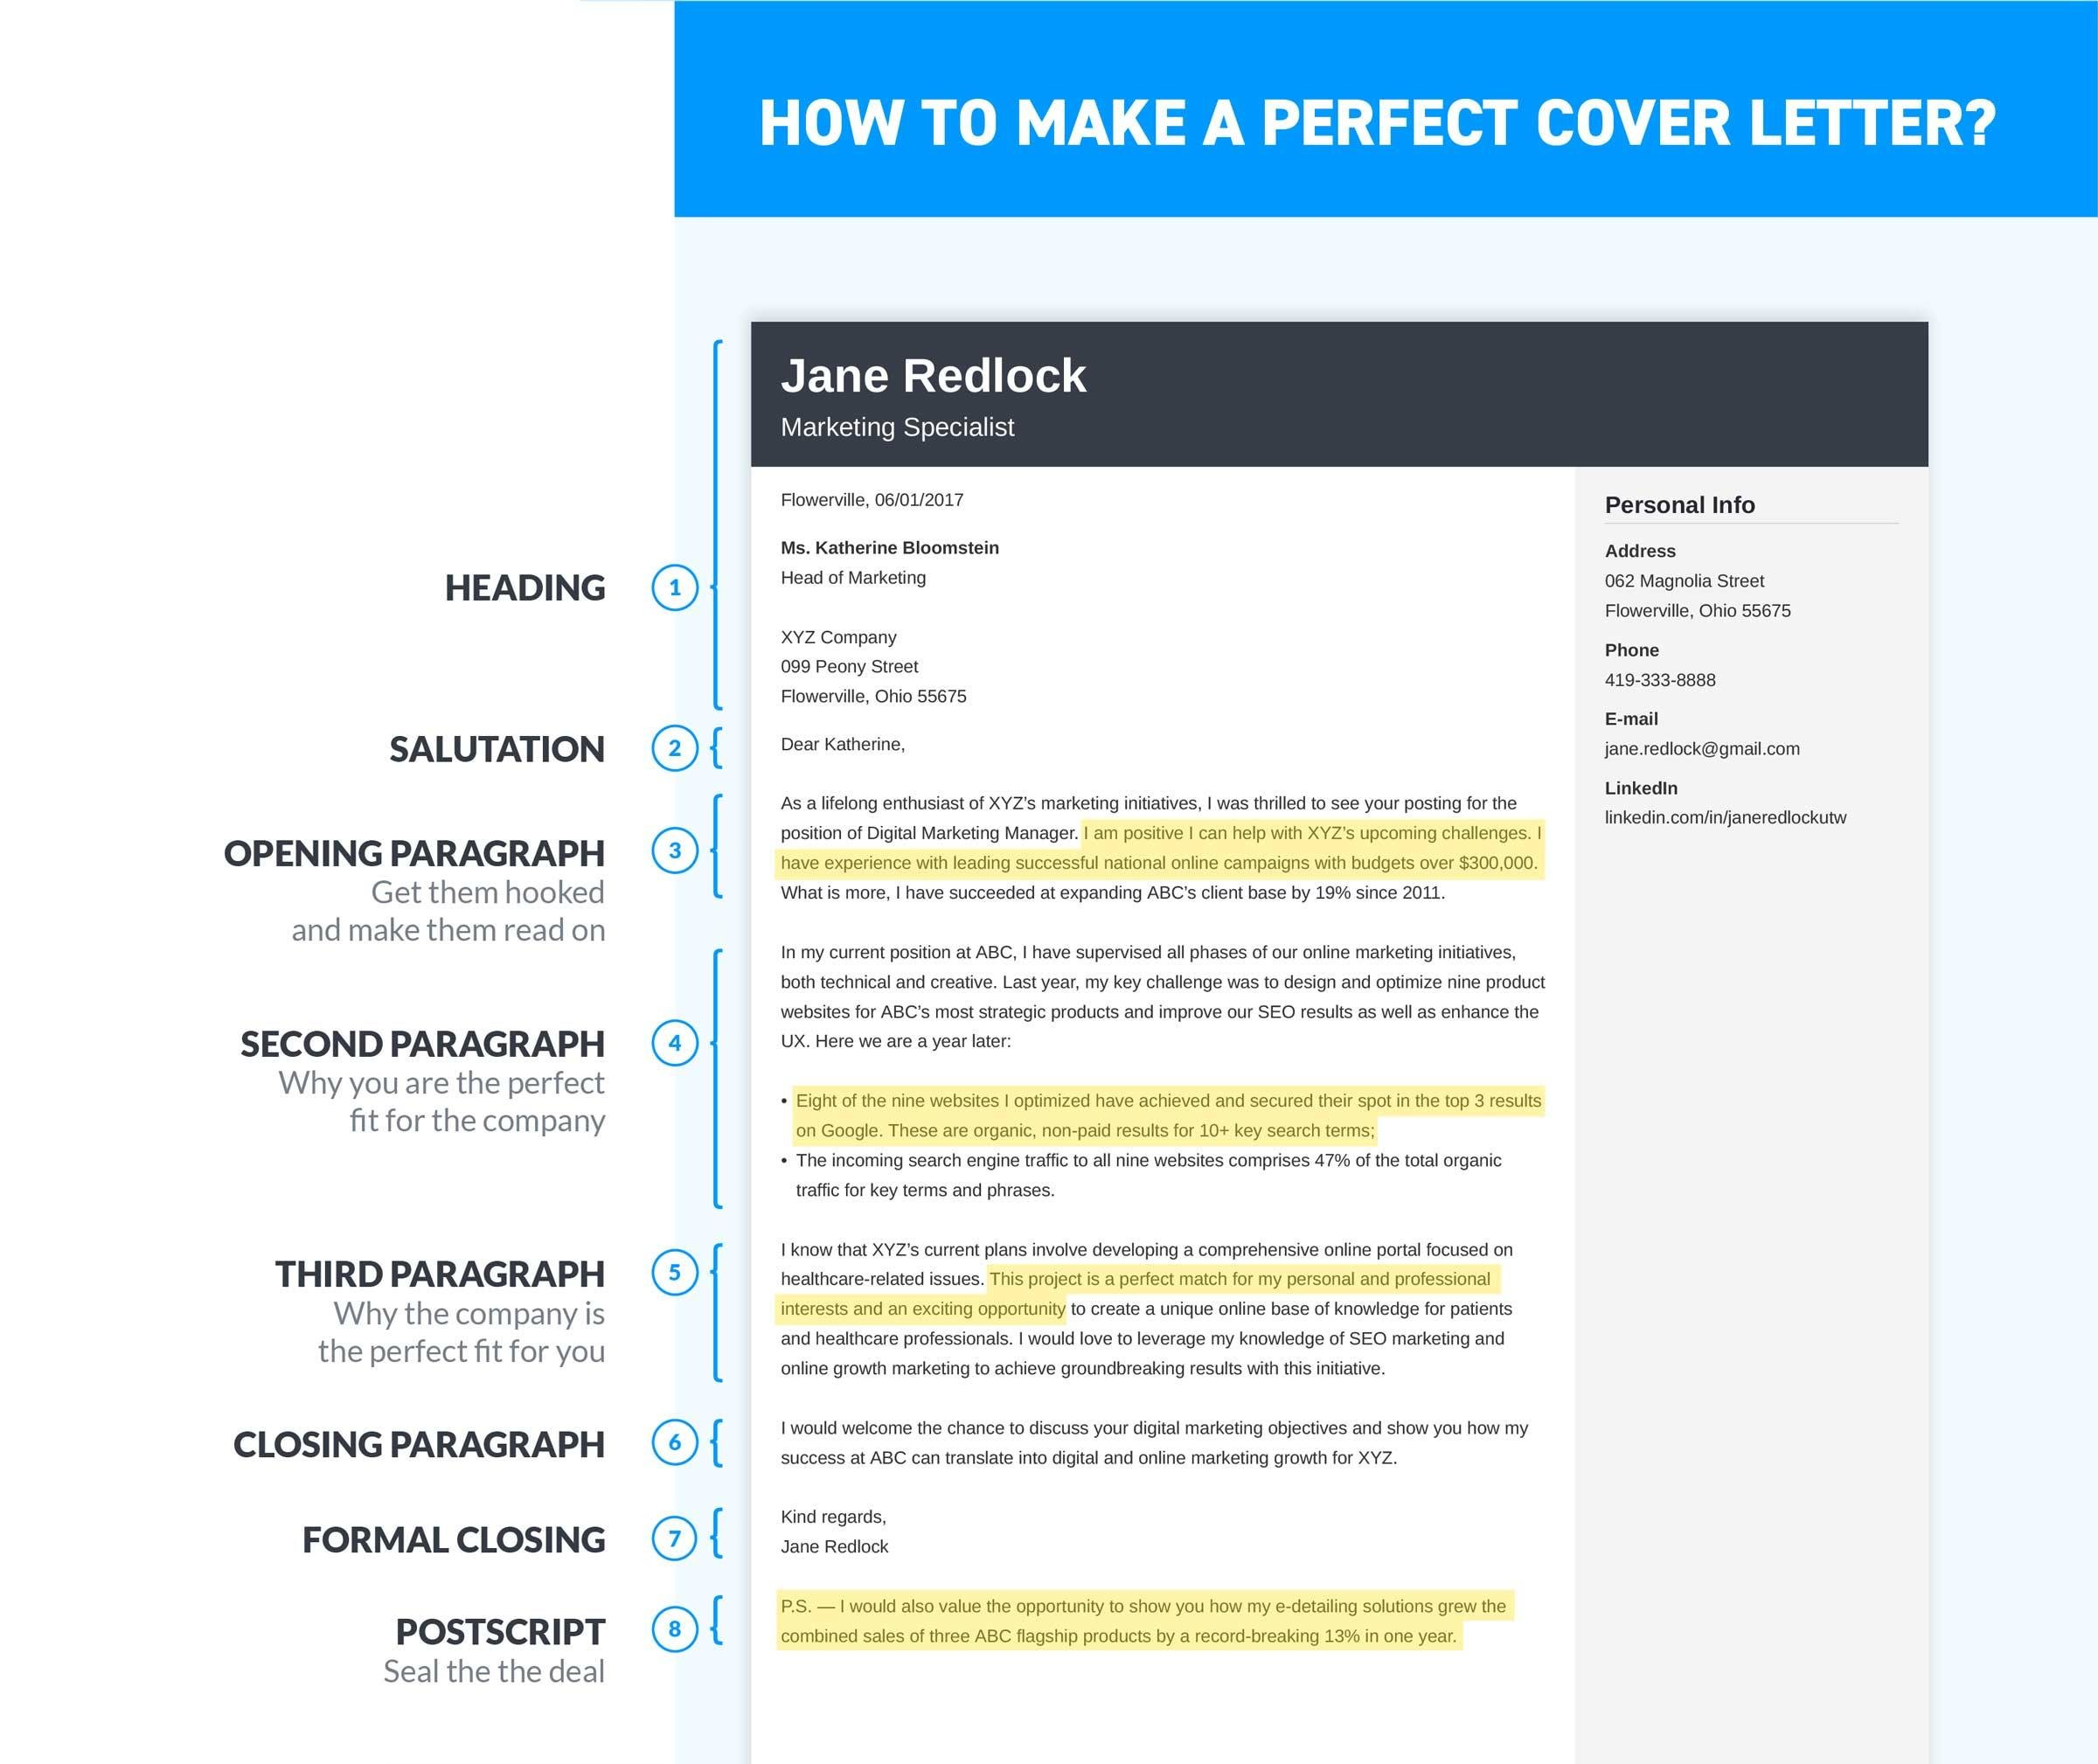 Good How To Make A Perfect Cover Letter Infographic Regard To How Do You Make A Cover Letter